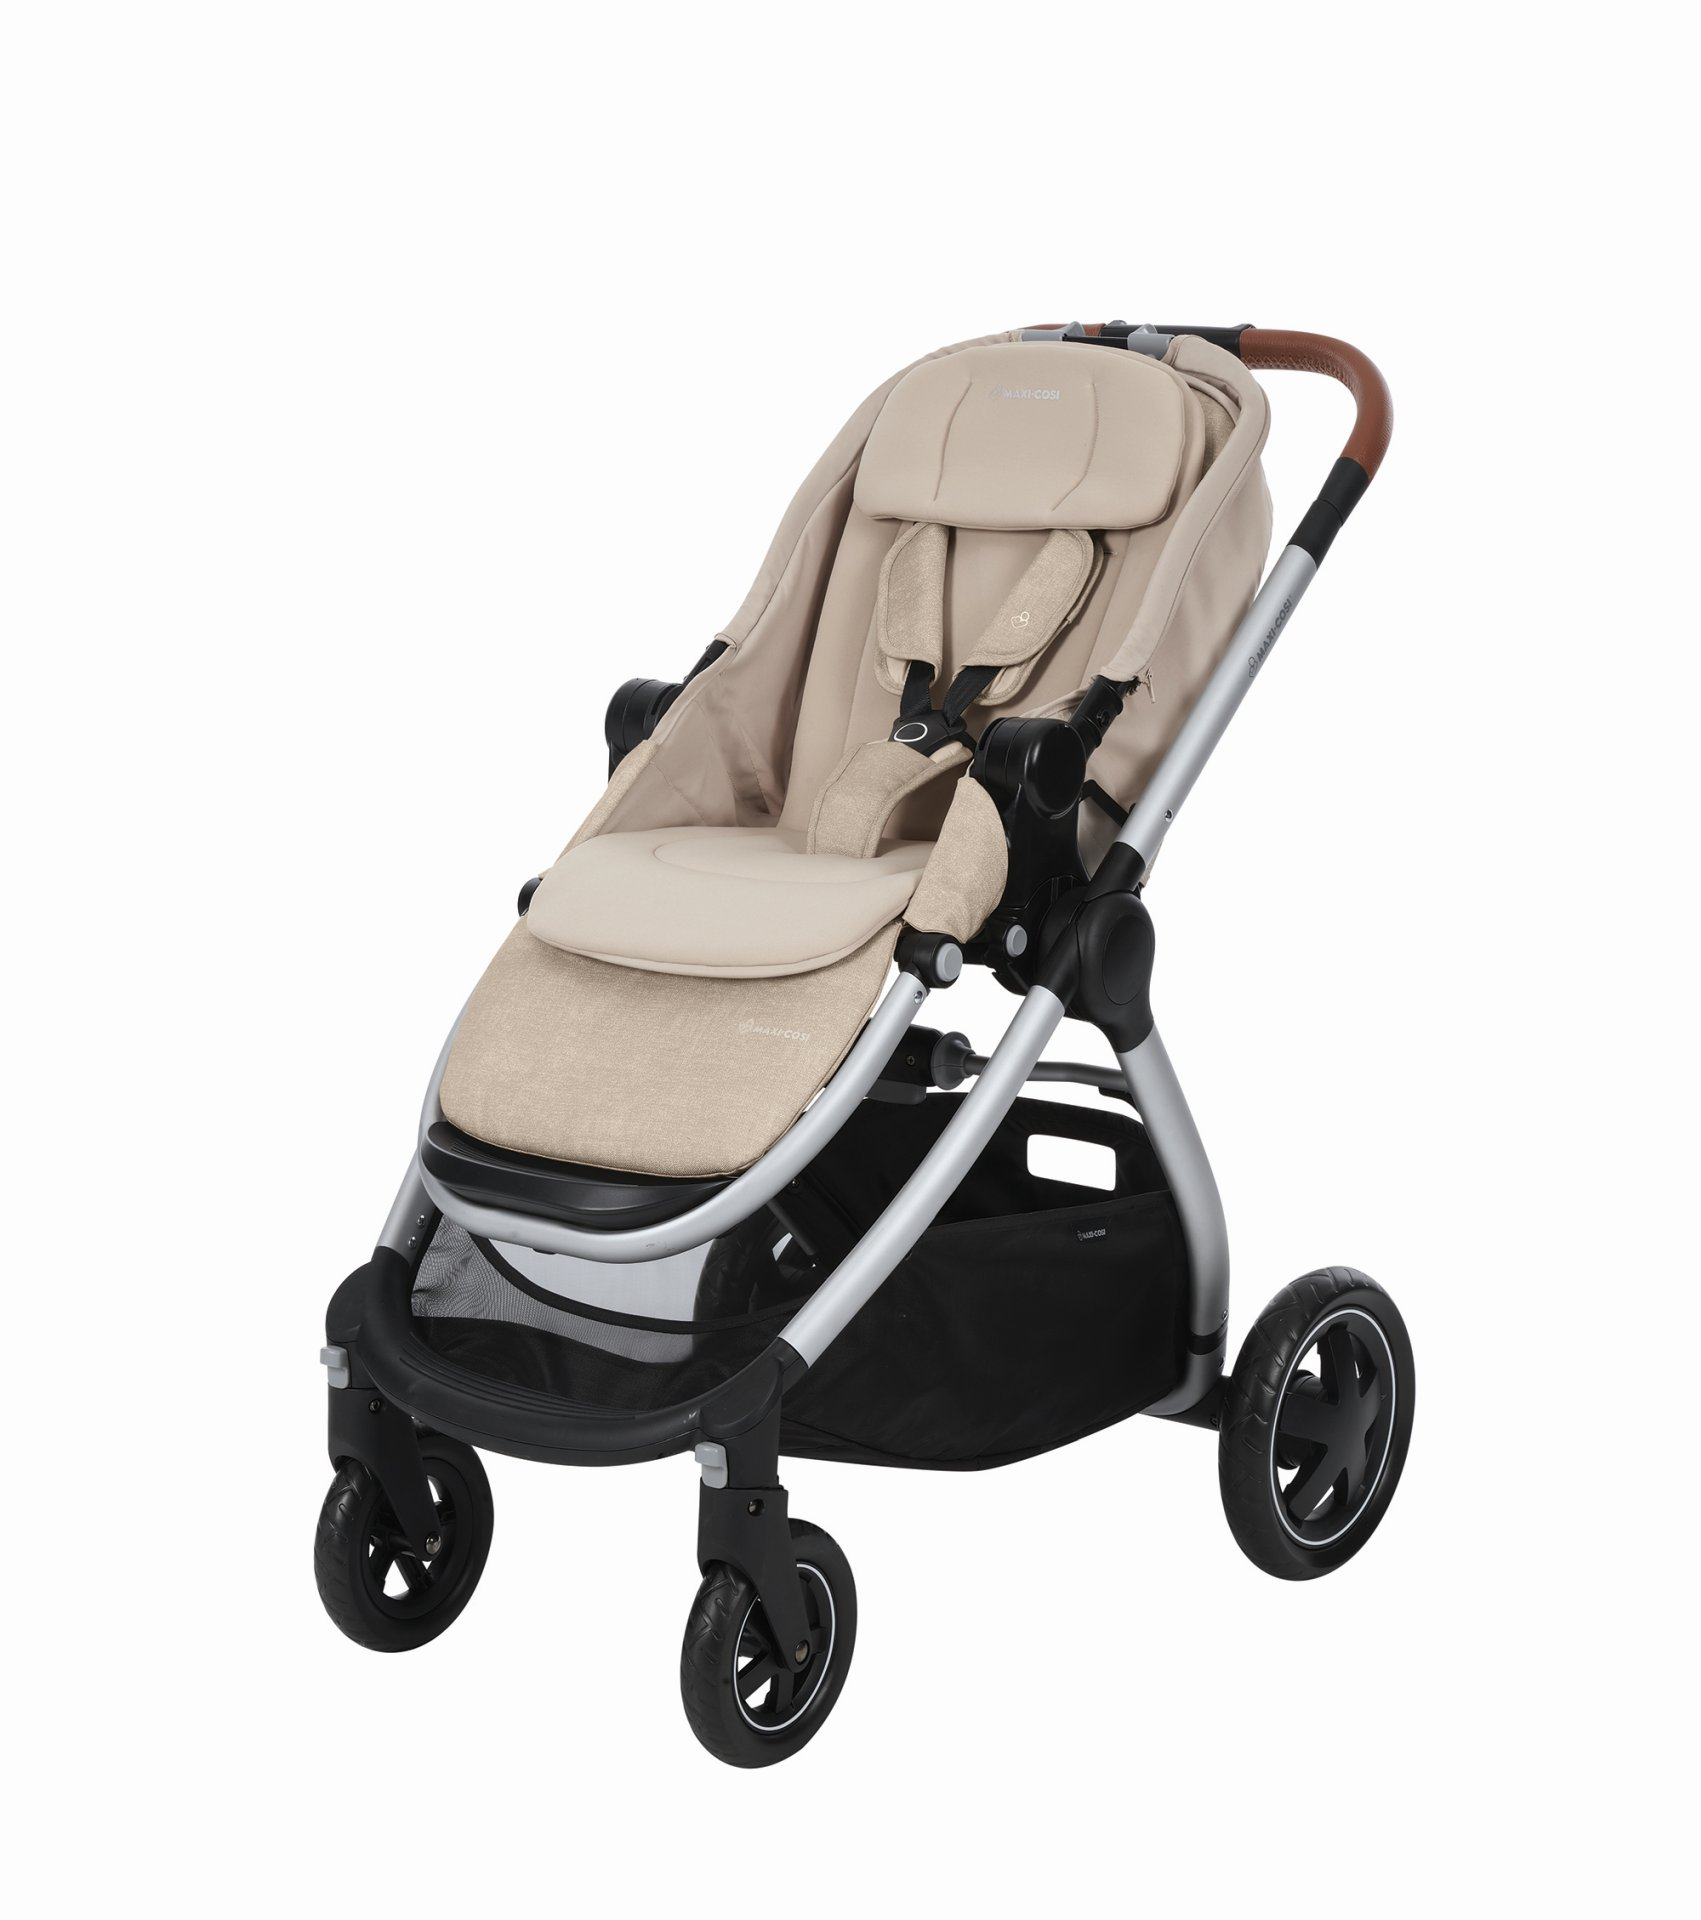 maxi cosi stroller adorra 2019 nomad sand buy at. Black Bedroom Furniture Sets. Home Design Ideas